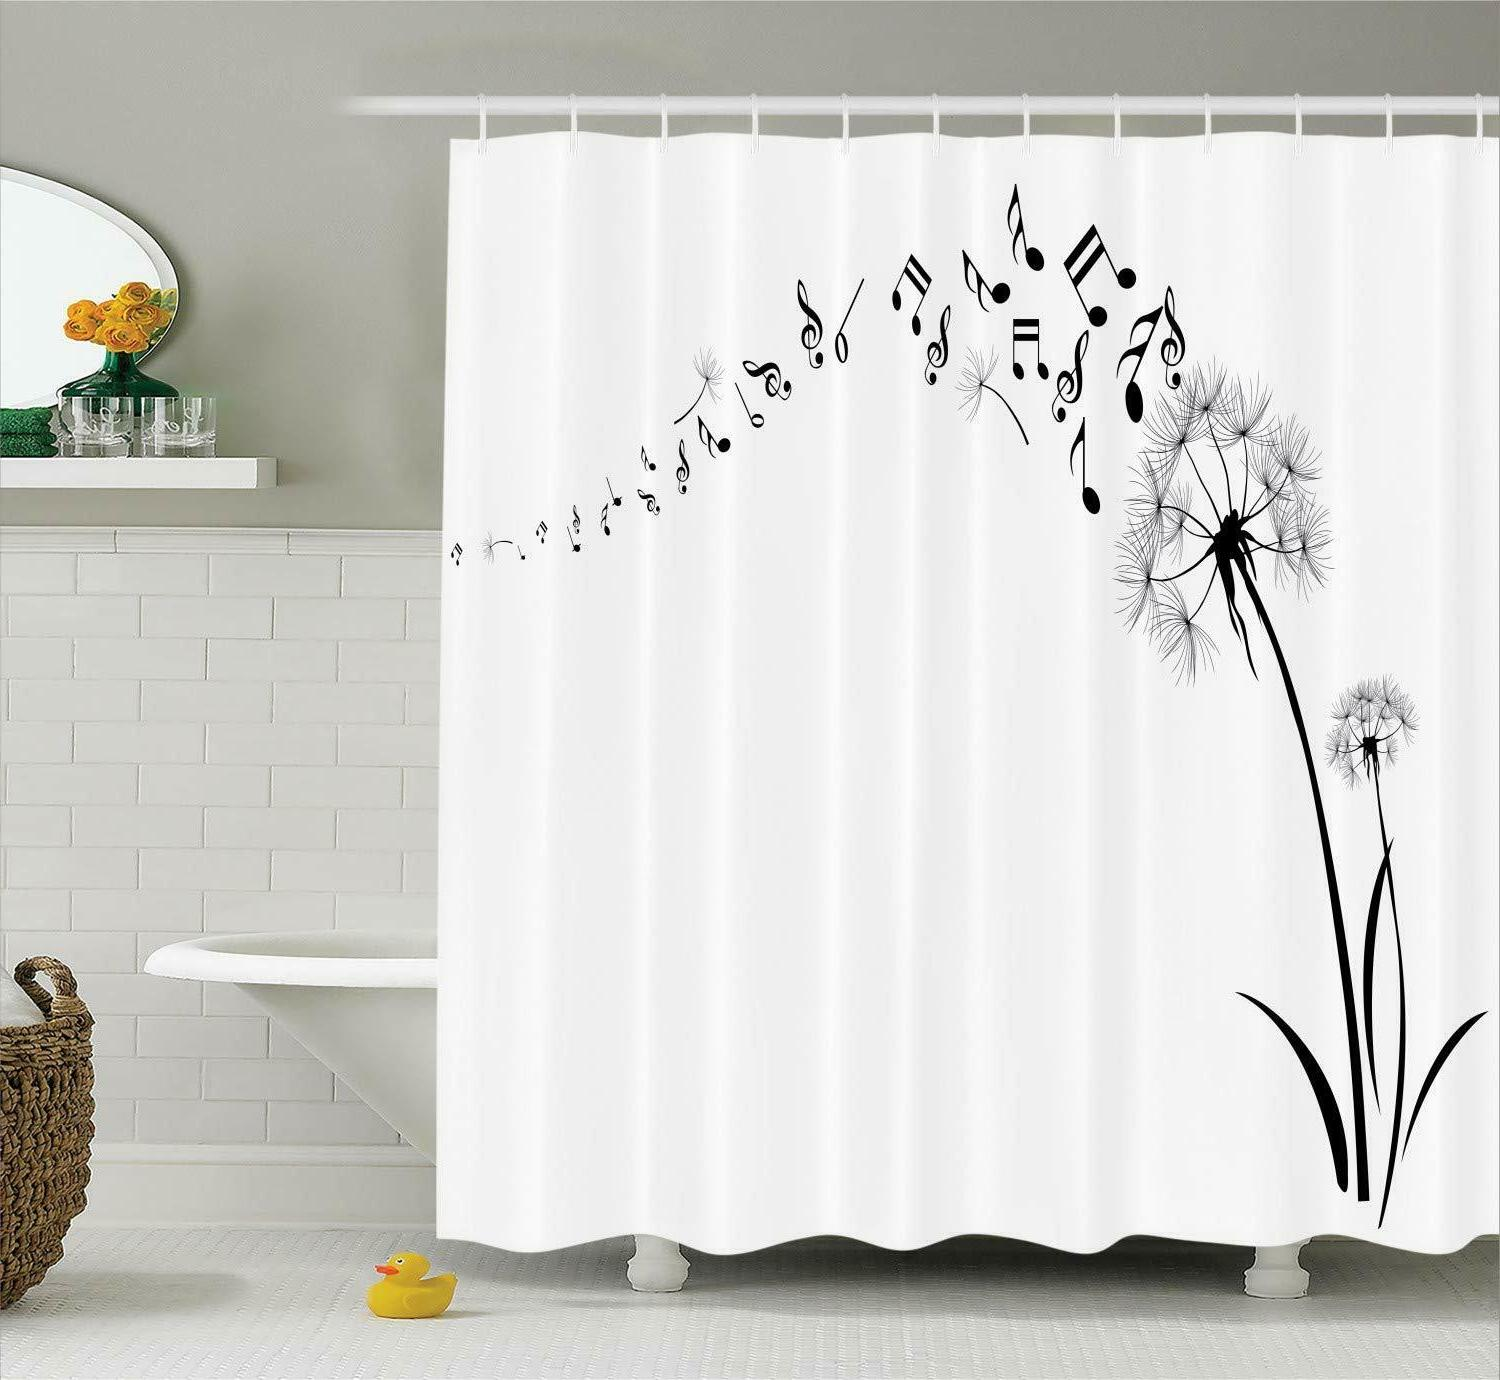 Ambesonne Floral Shower Curtain Set Music Decor Dandelion